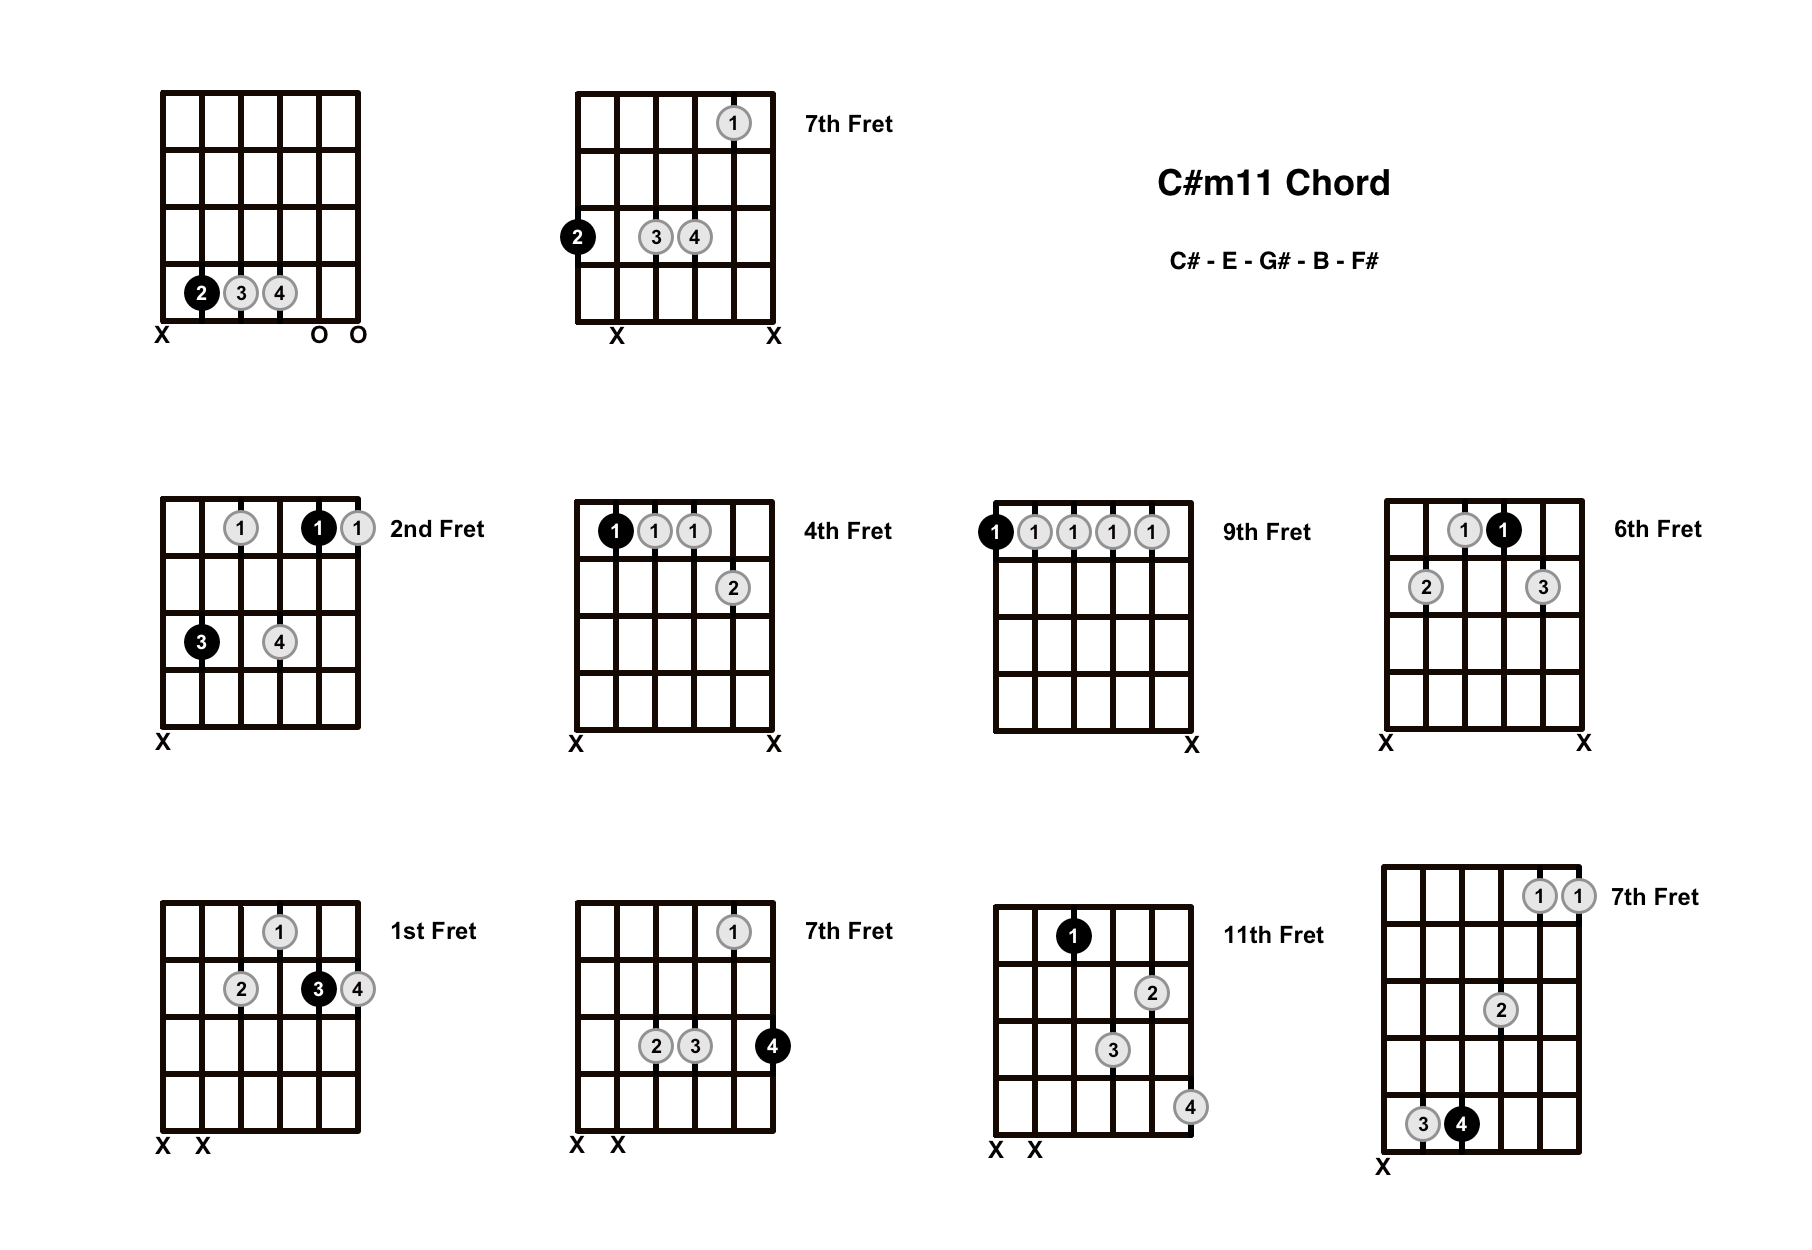 C#m11 Chord On The Guitar (C Sharp minor 11) – Diagrams, Finger Positions and Theory